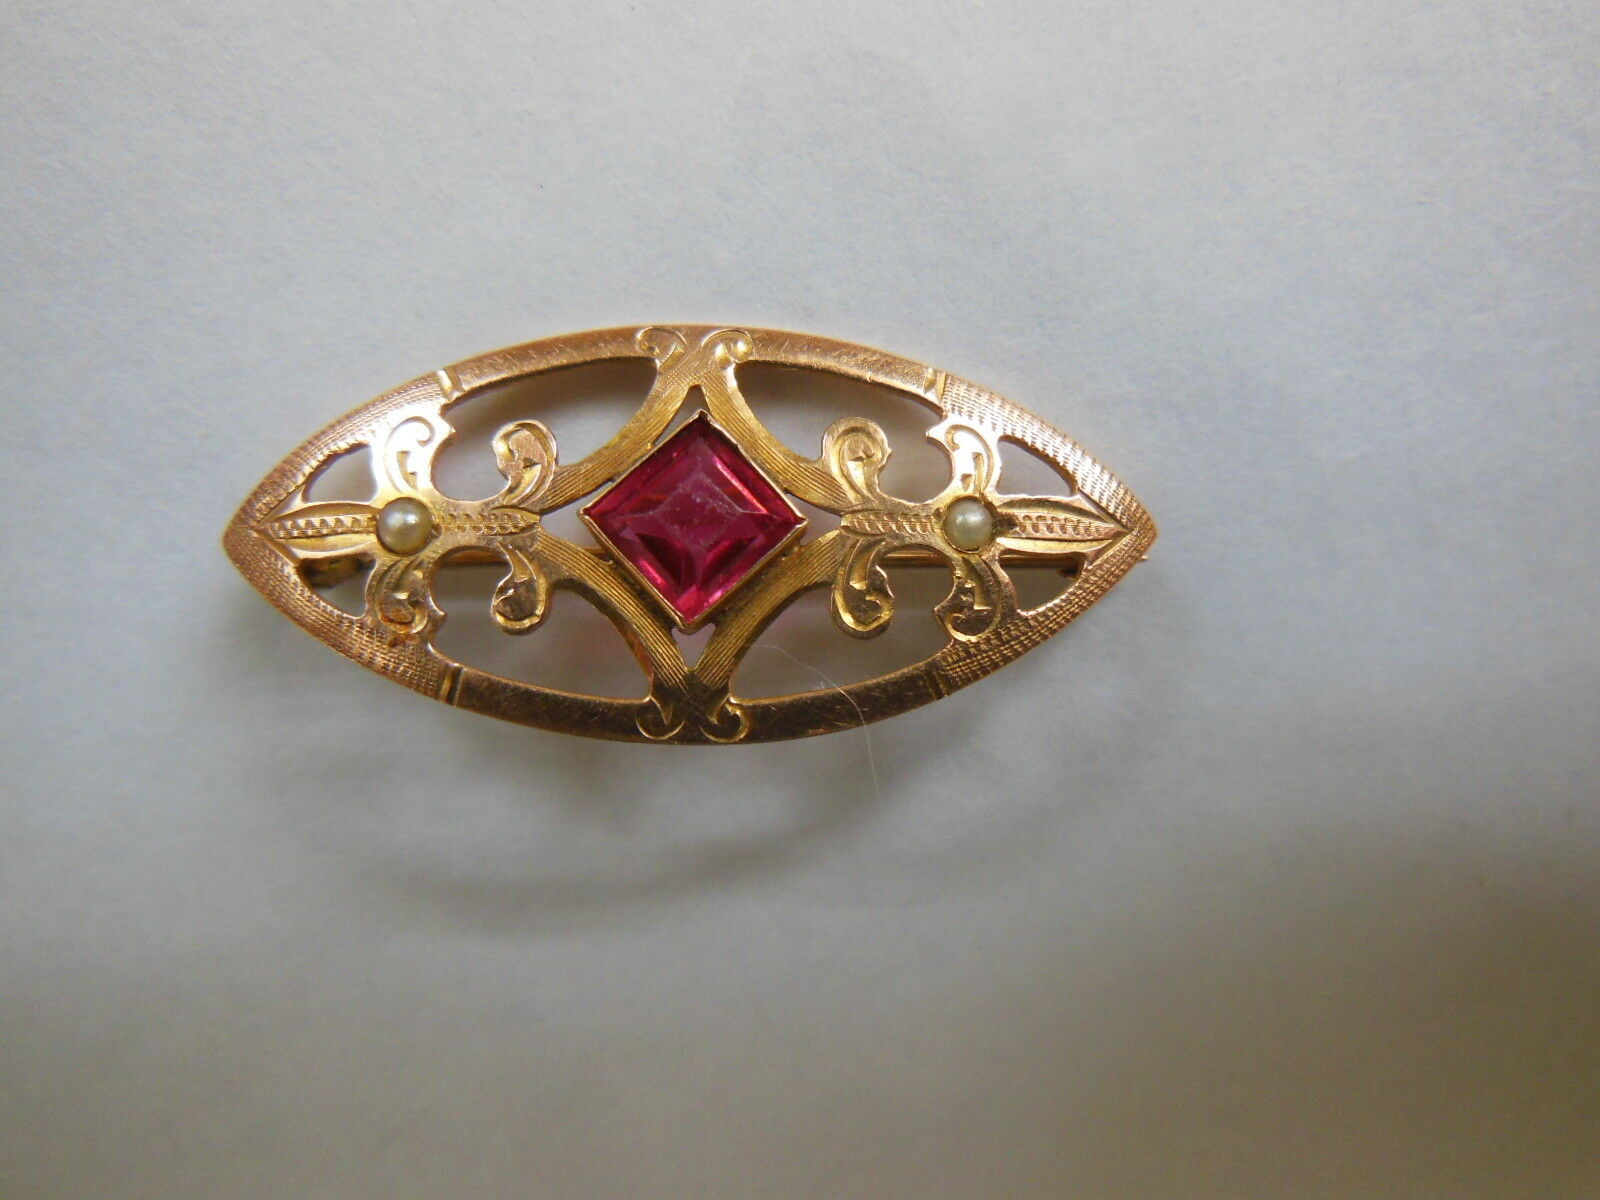 Antique Estate Art Nouveau Deco 14k gold Ruby & Seed Pearl Brooch Pin